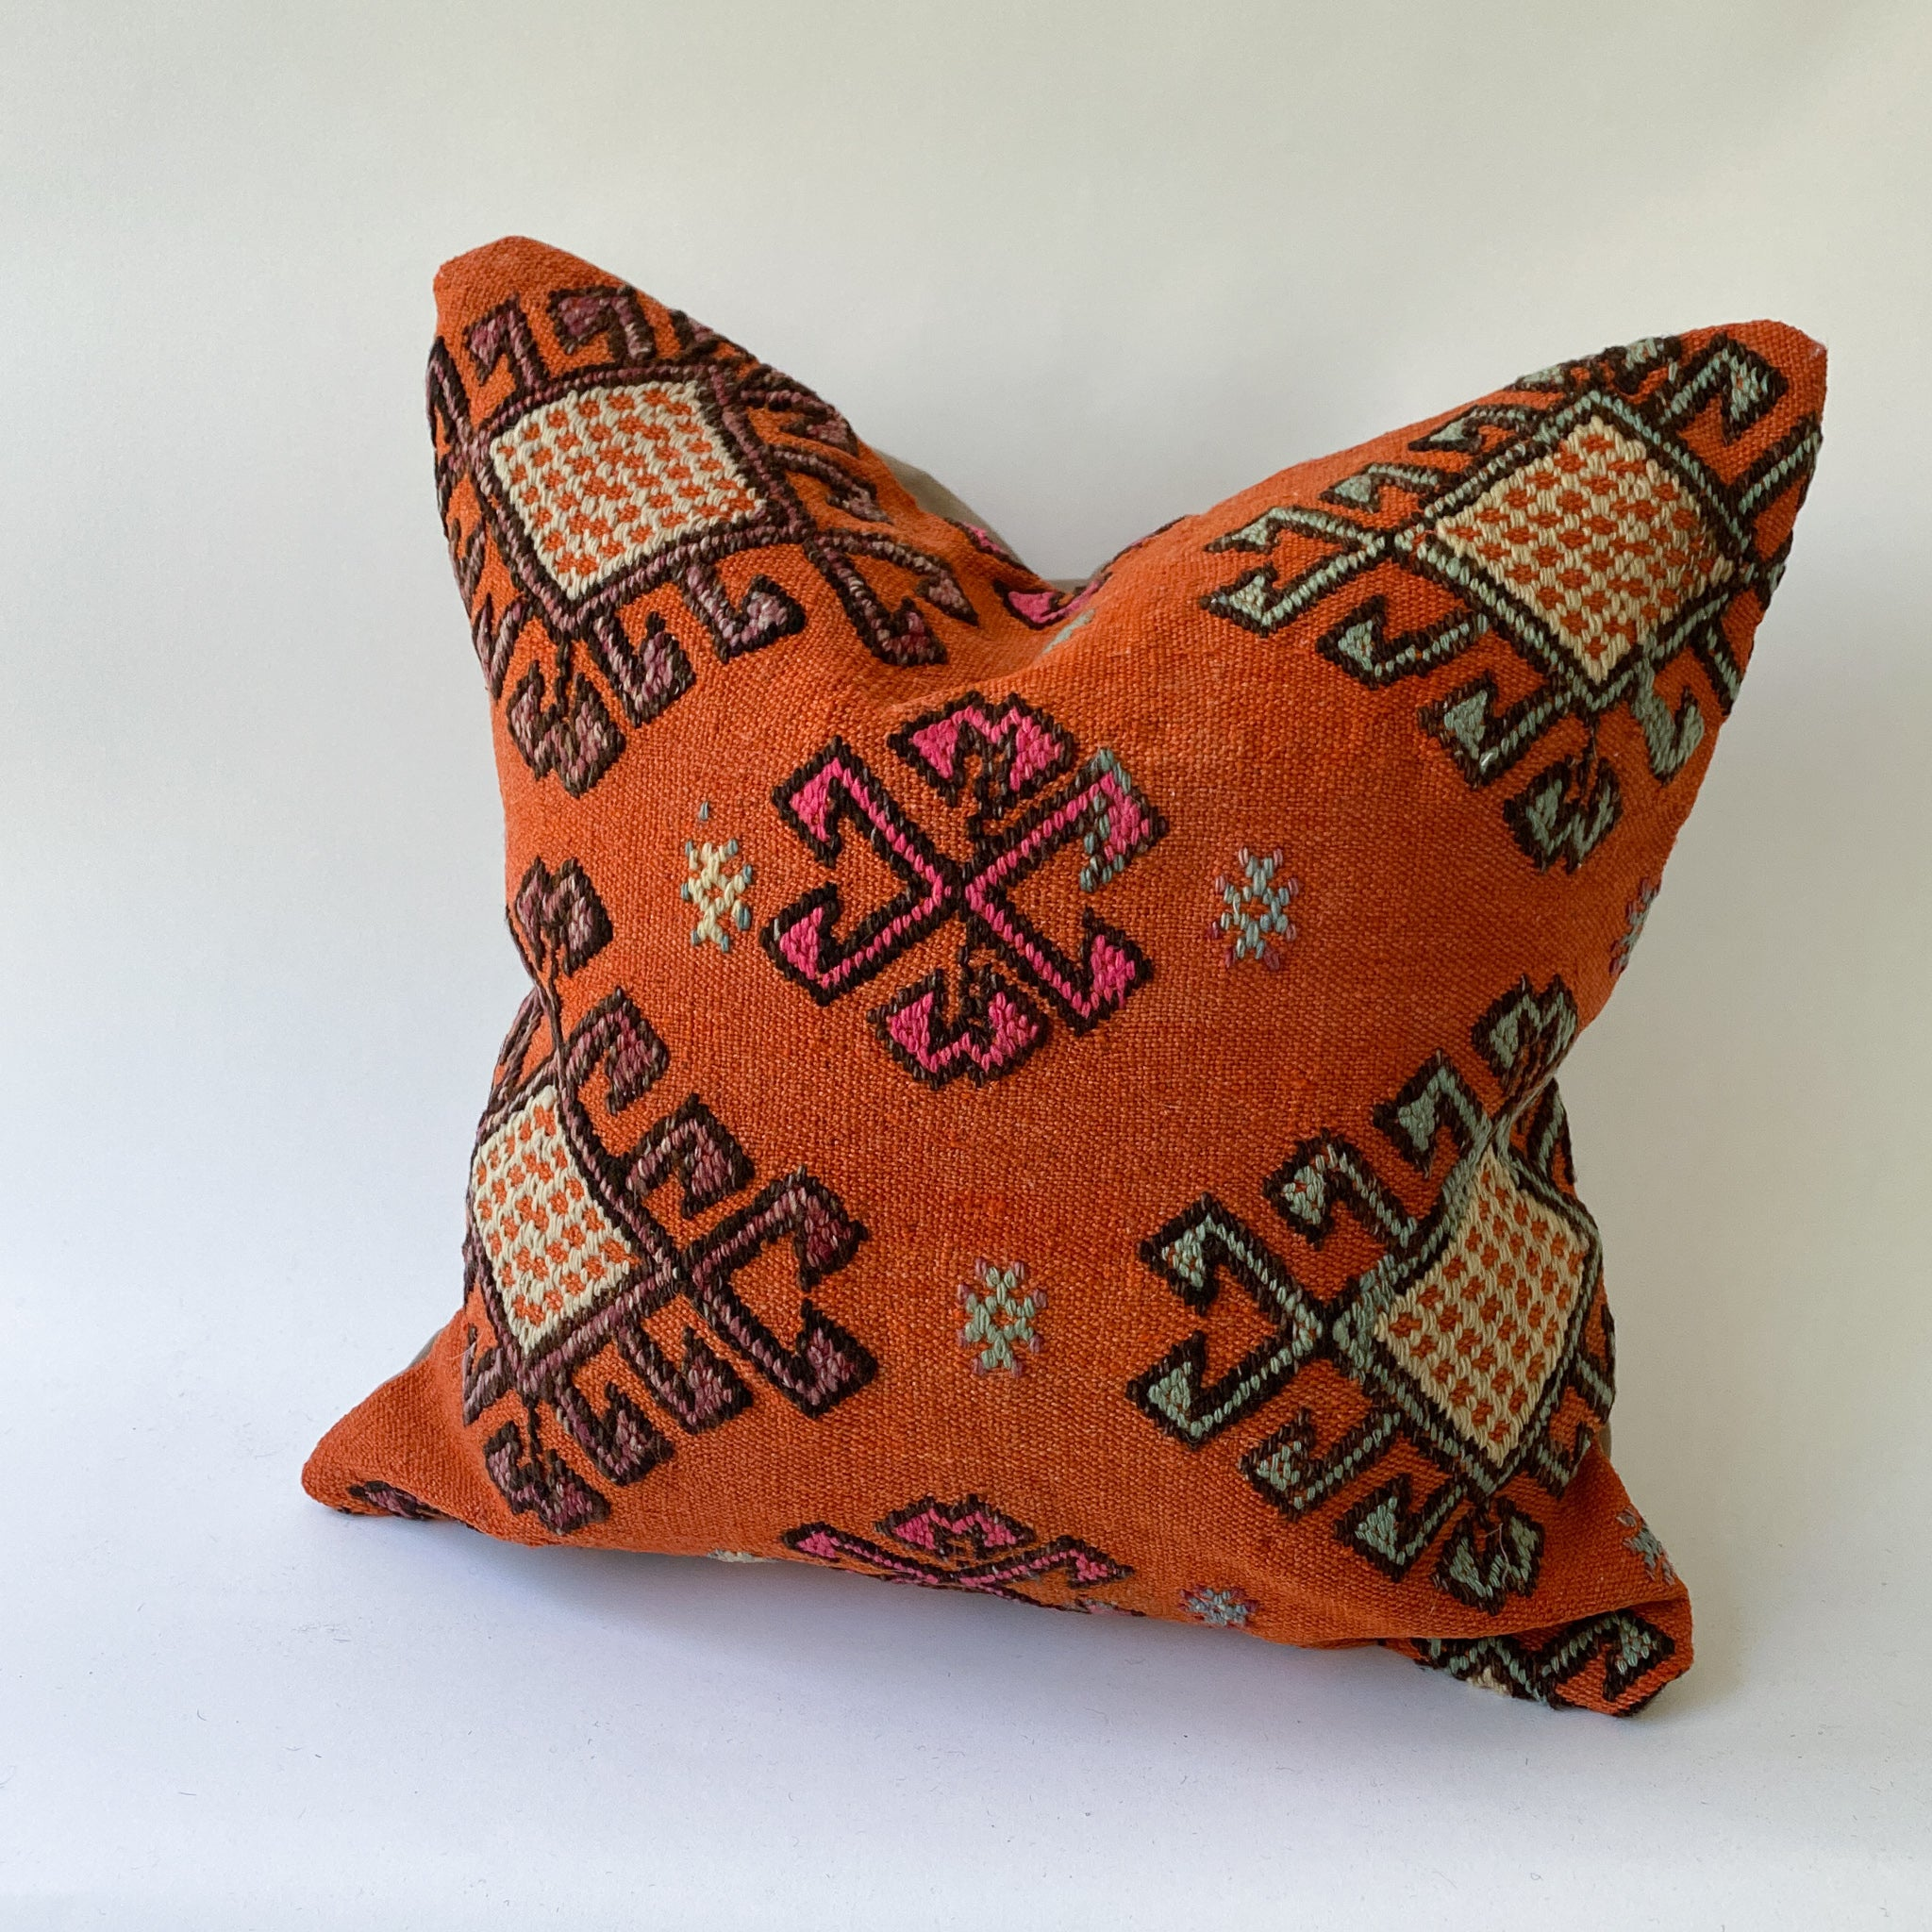 049 Pillow Pair 19x19